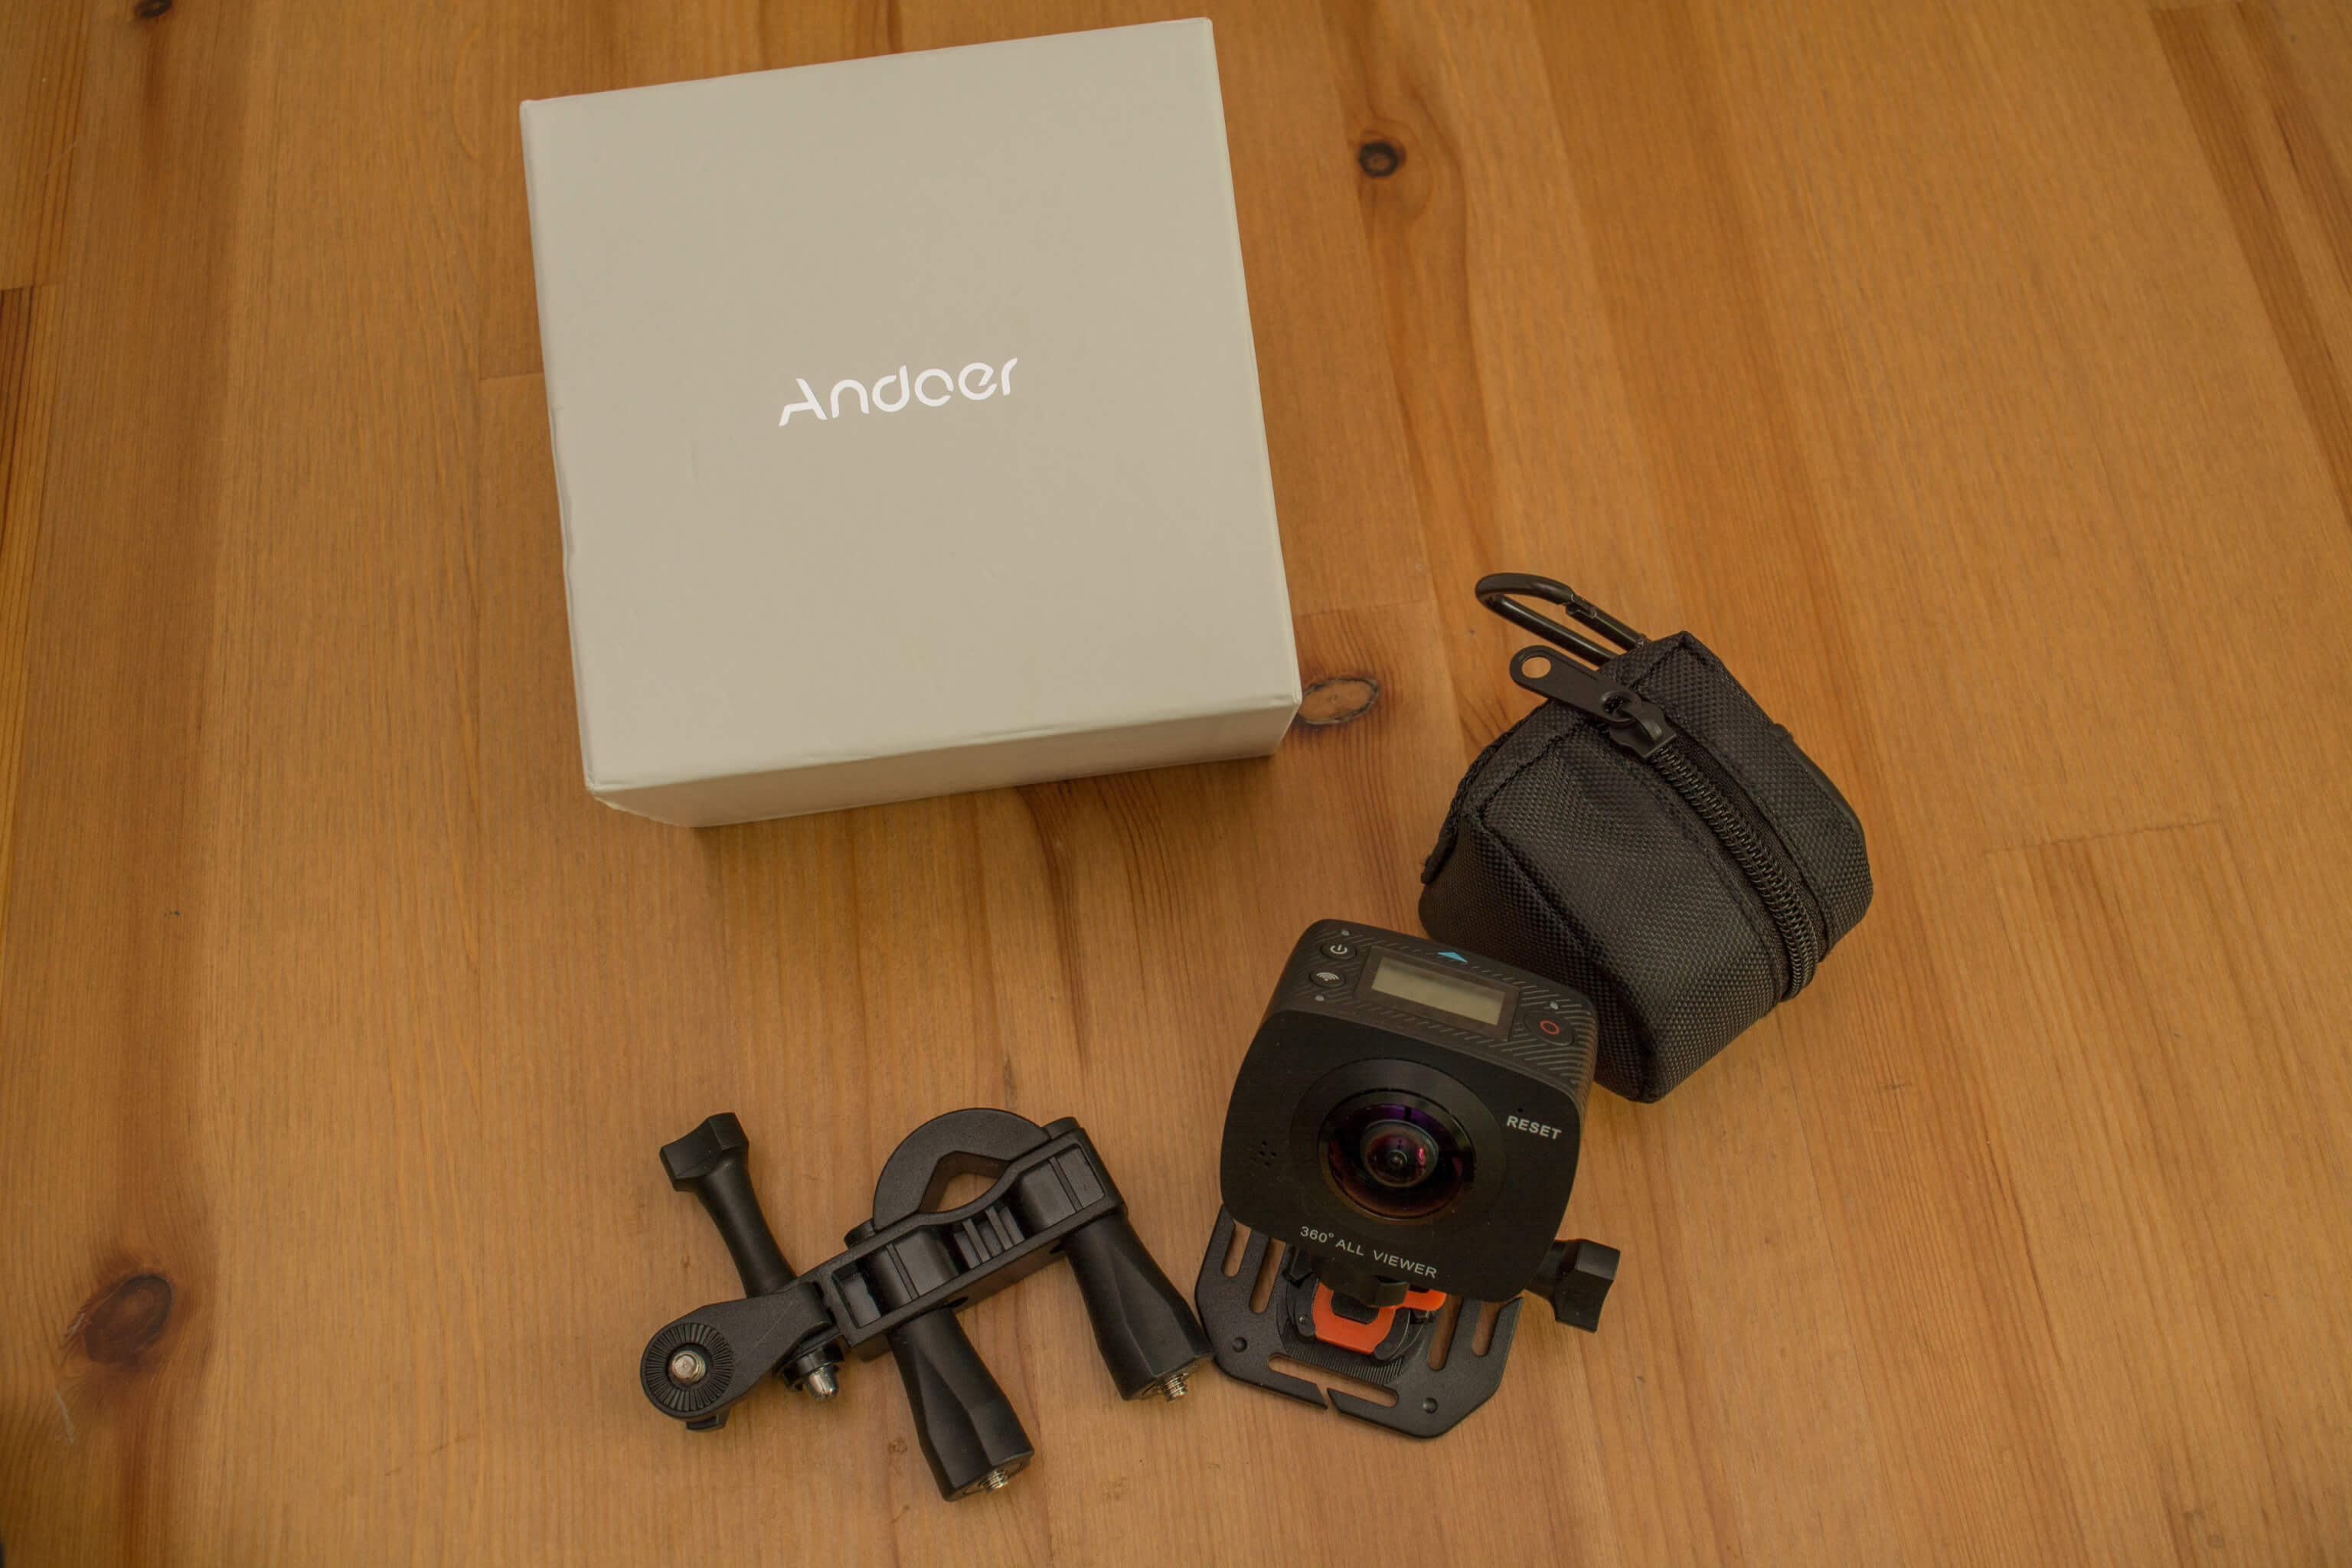 rundum die andoer 360 action cam im test. Black Bedroom Furniture Sets. Home Design Ideas